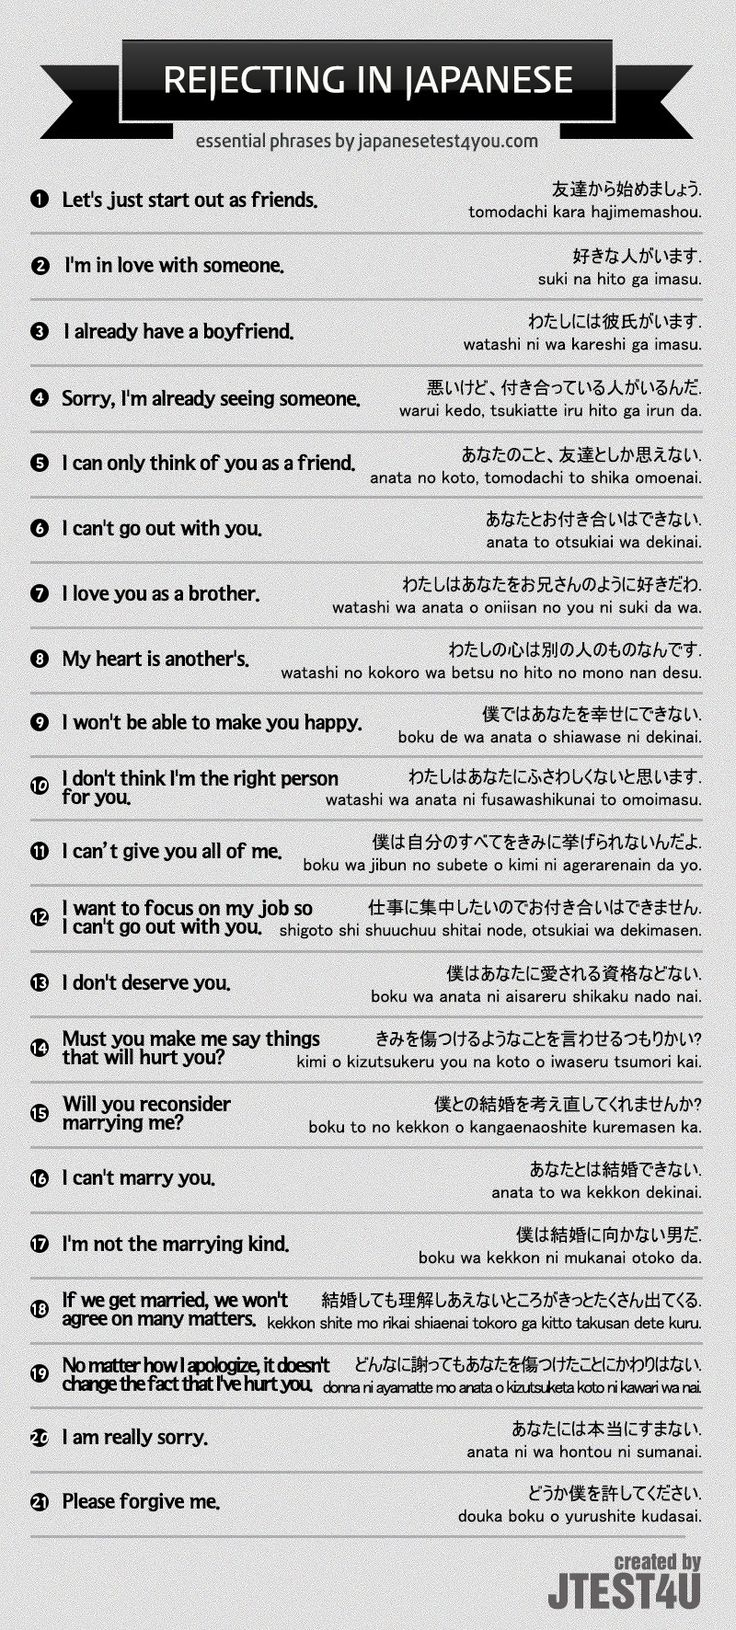 Japanese for Beginners - How to Start - ThoughtCo